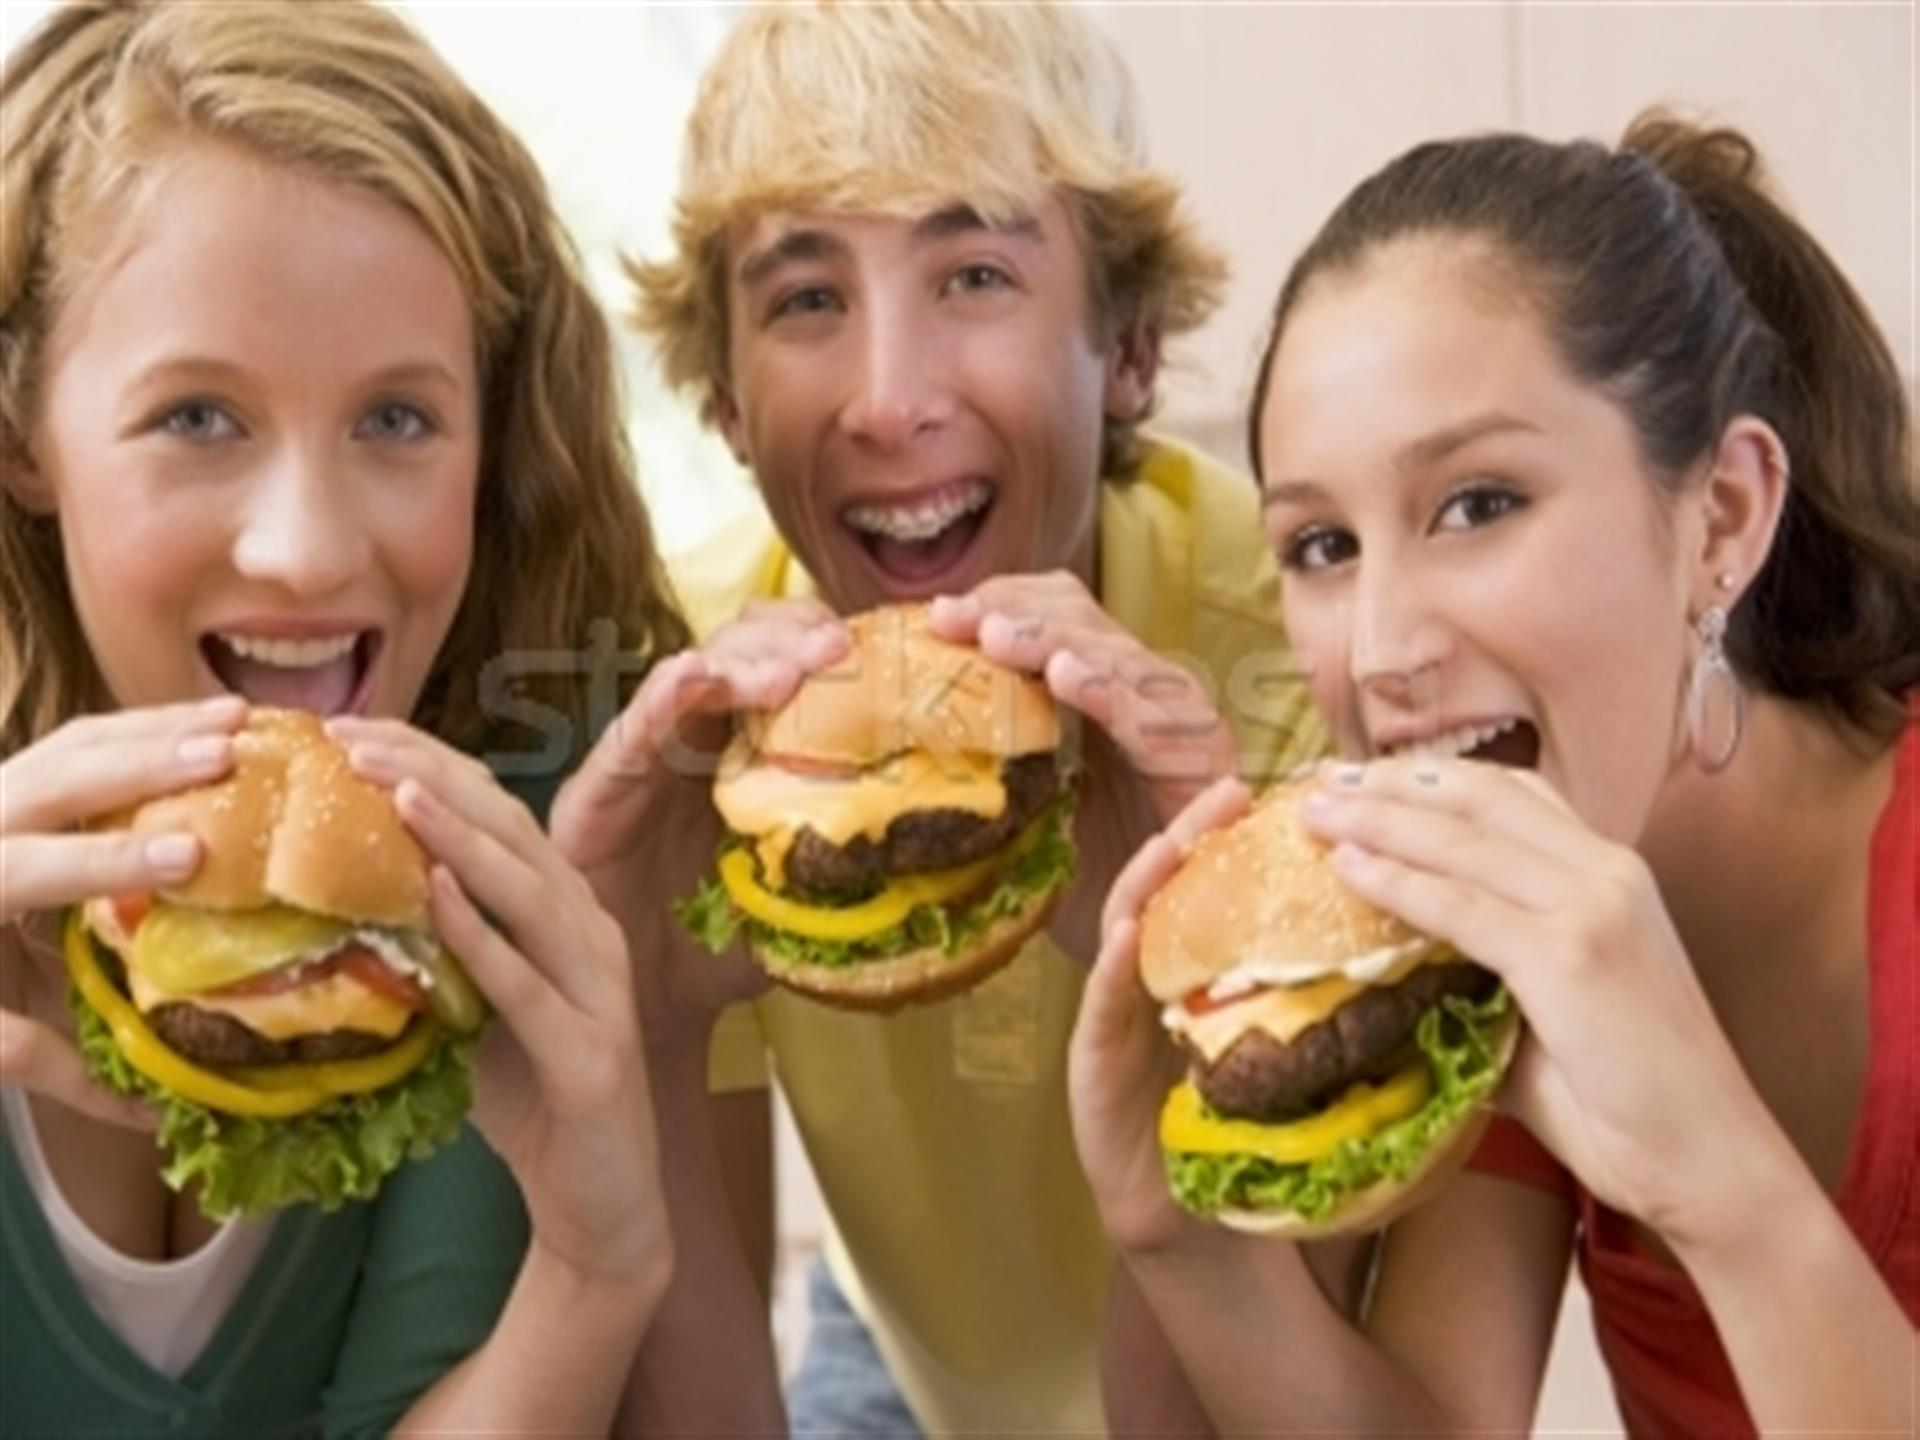 Teenagers enjoying hamburgers